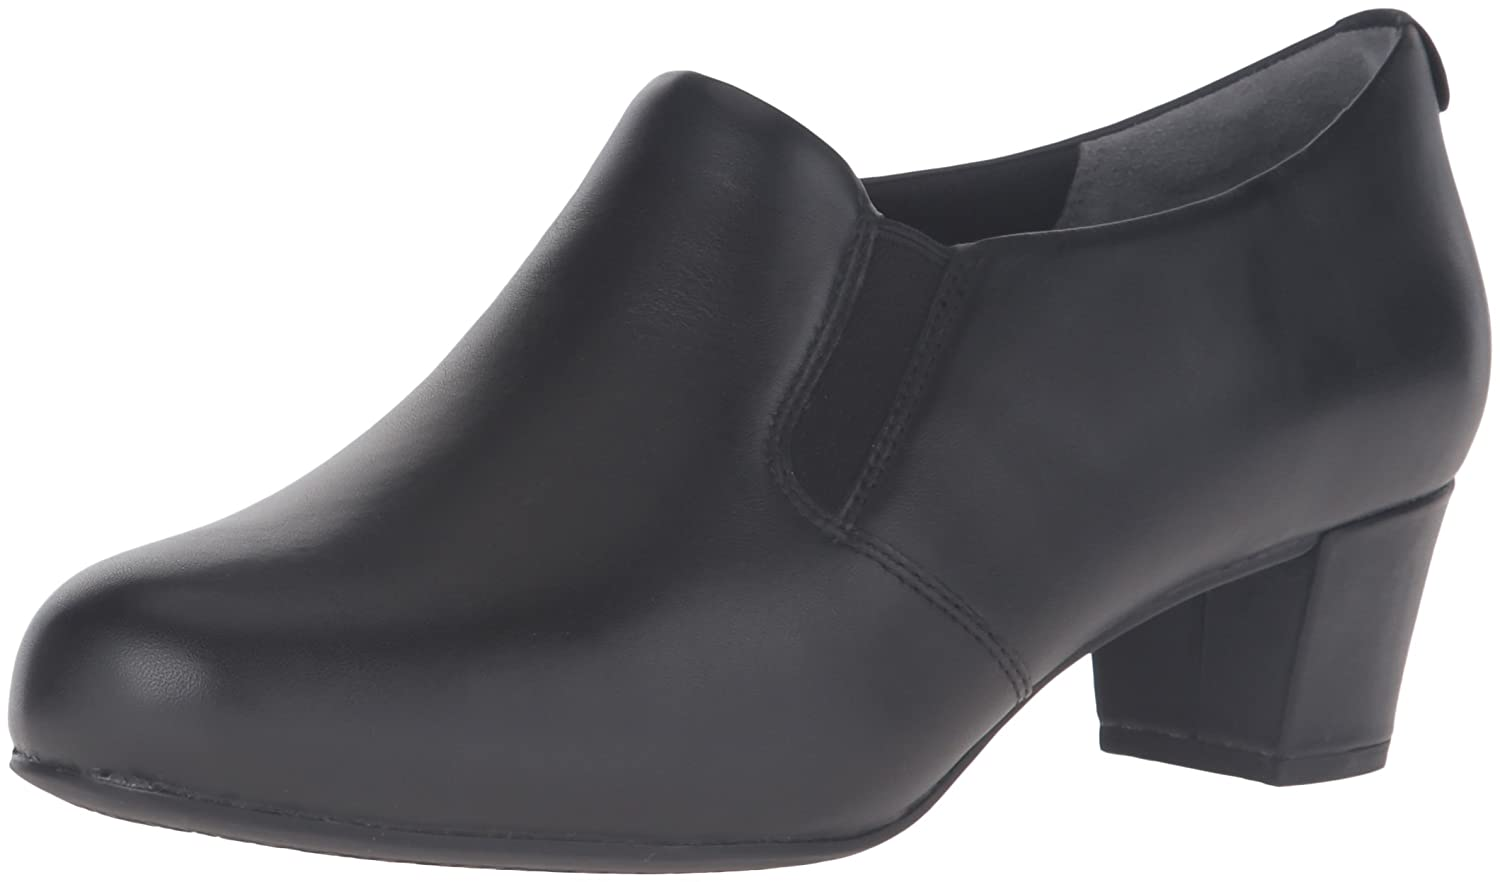 Rockport Women's Total Motion Cherene Boot B01ABRQ85W 9.5 W US|Black Leather